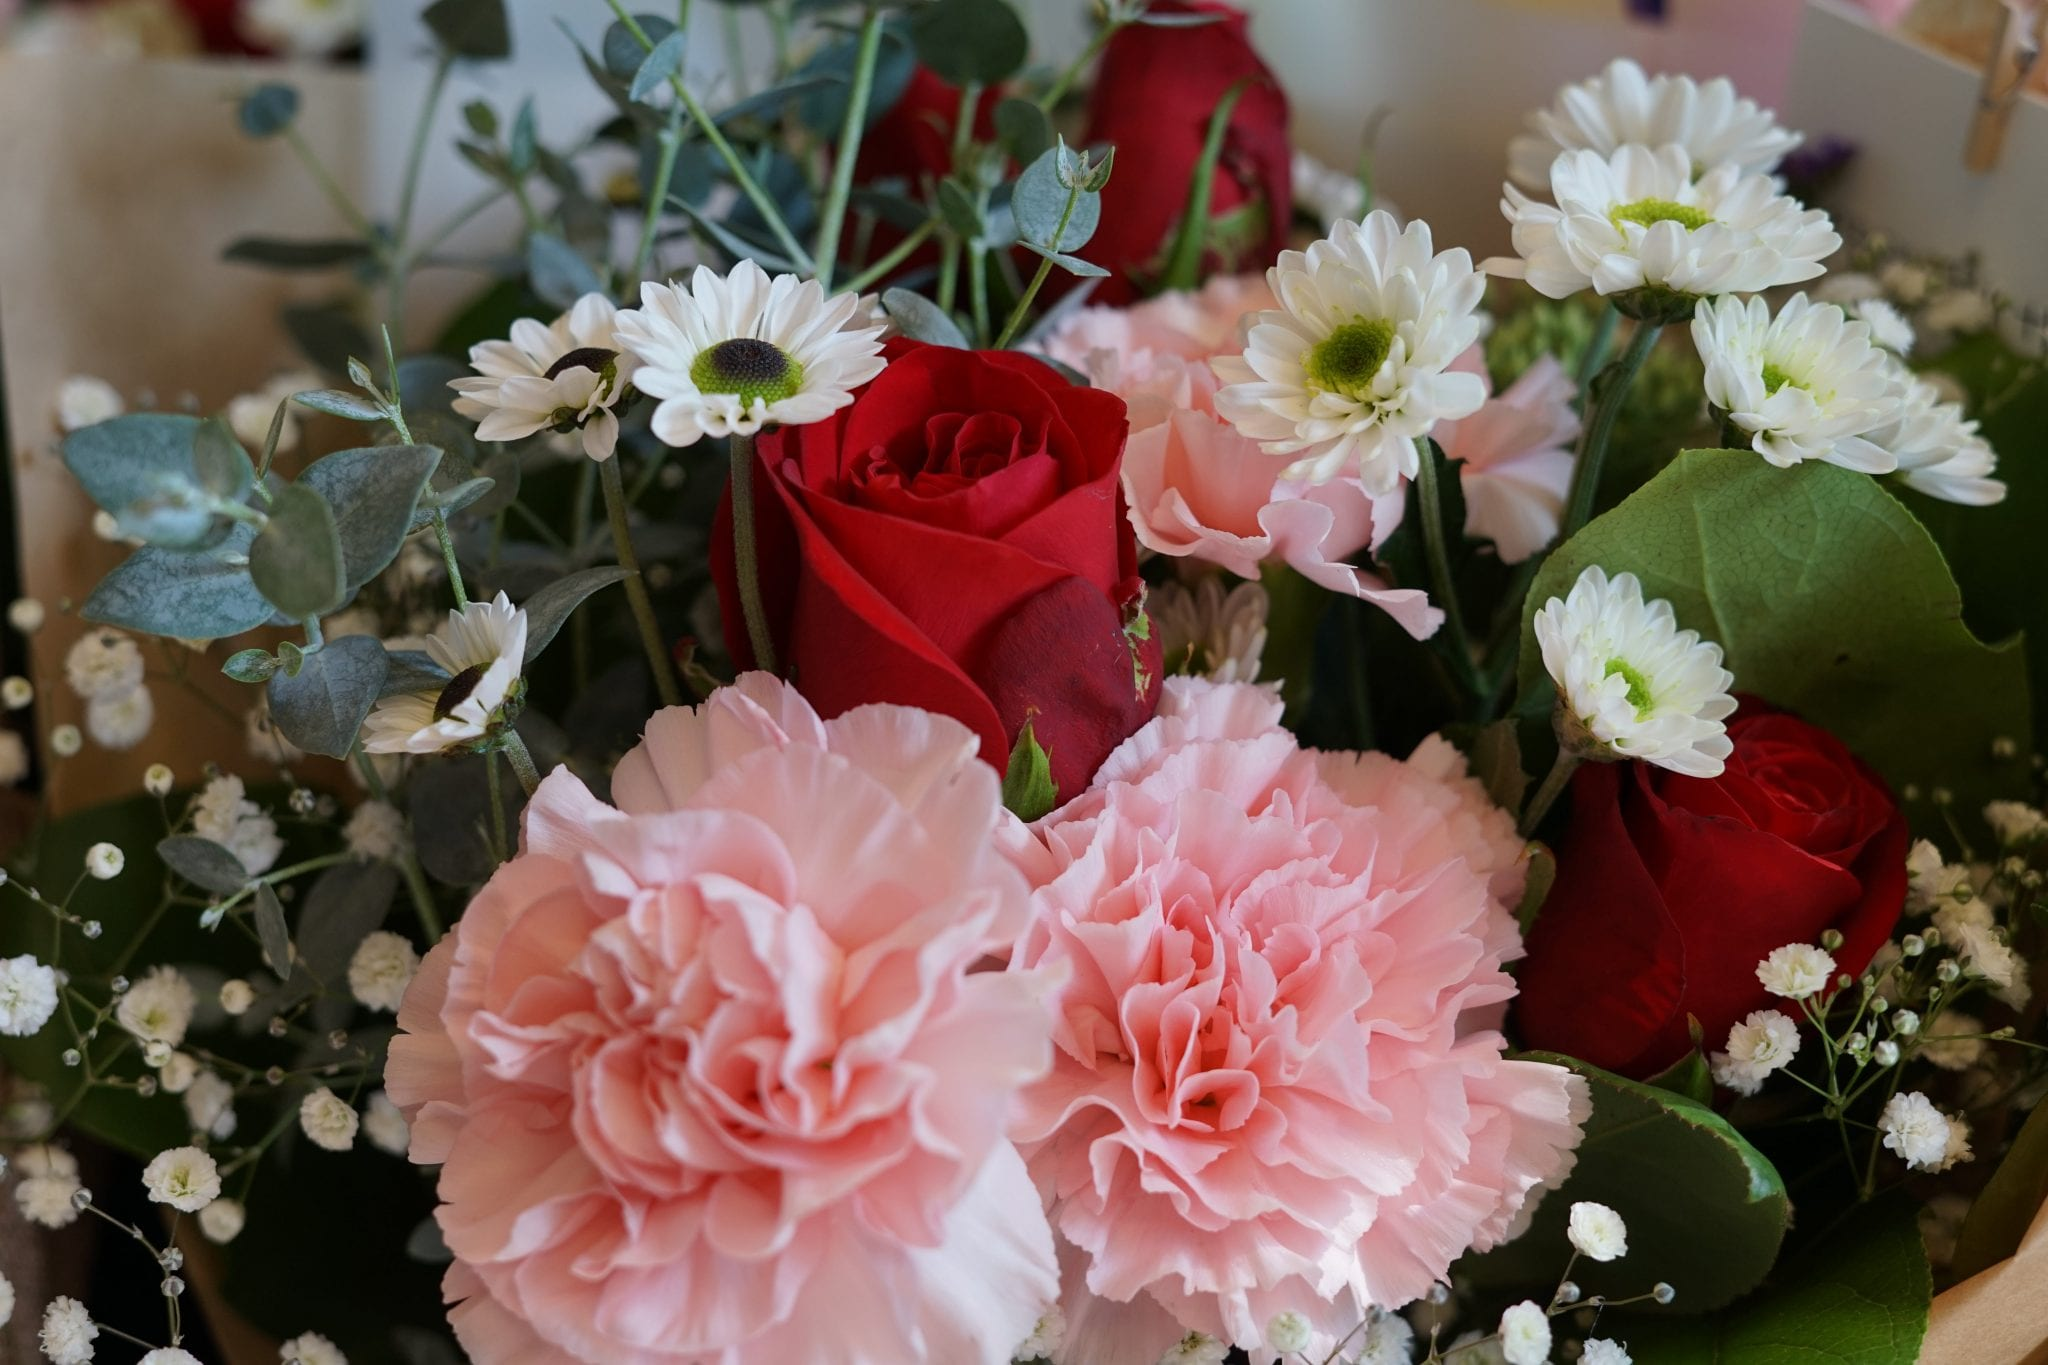 FGK's Flower Bouquet Of The Day